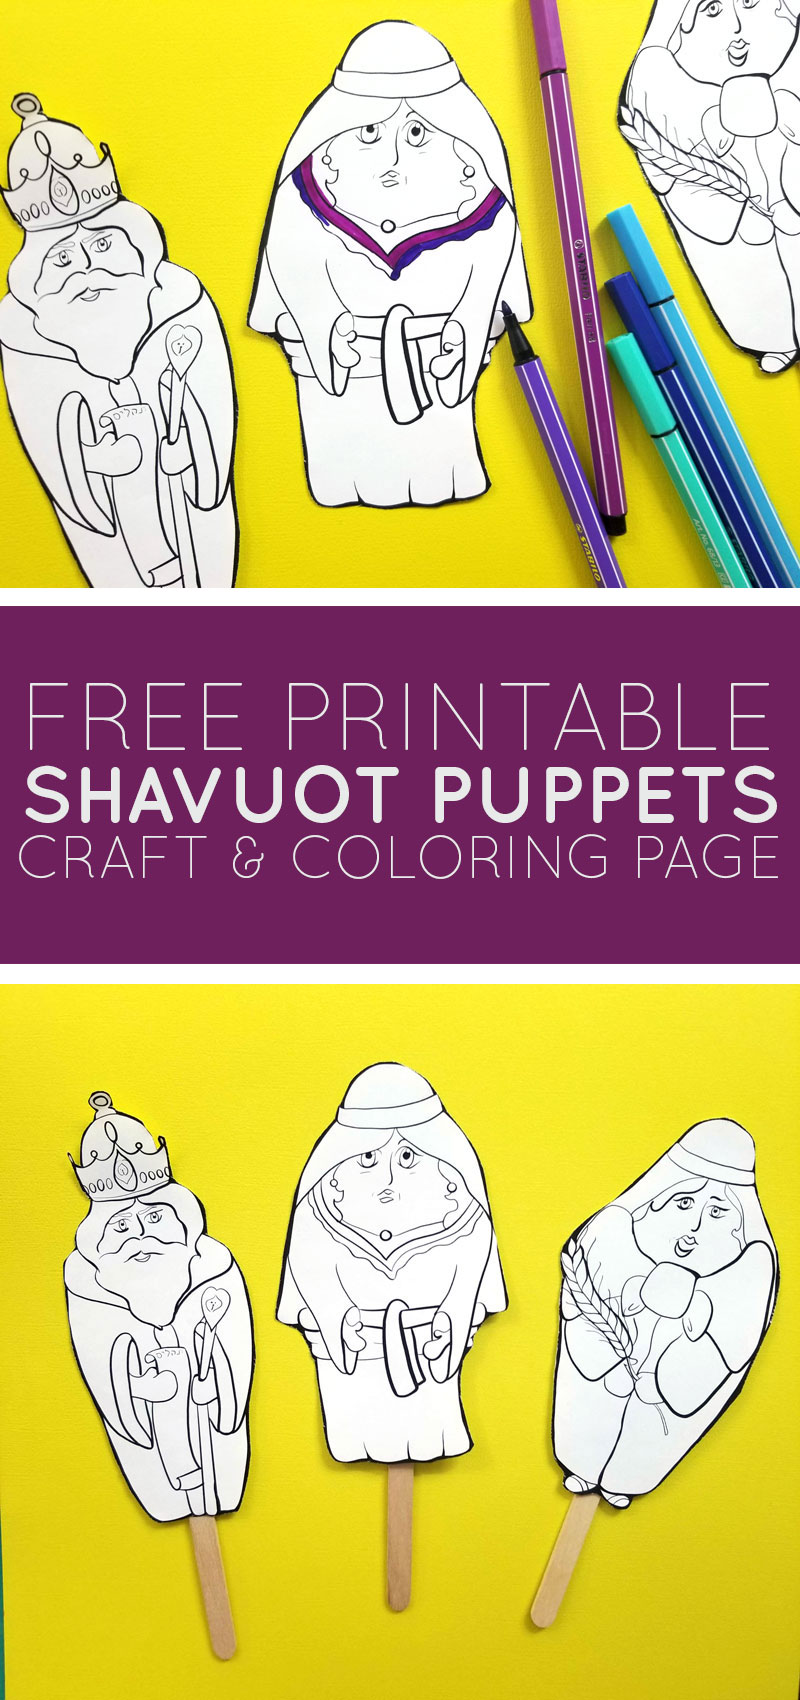 Click to download free printable shavuot coloring puppets! These fun Ruth and Naomi stick puppets are great for teaching about the Book of Ruth and the holiday of Shavuos.